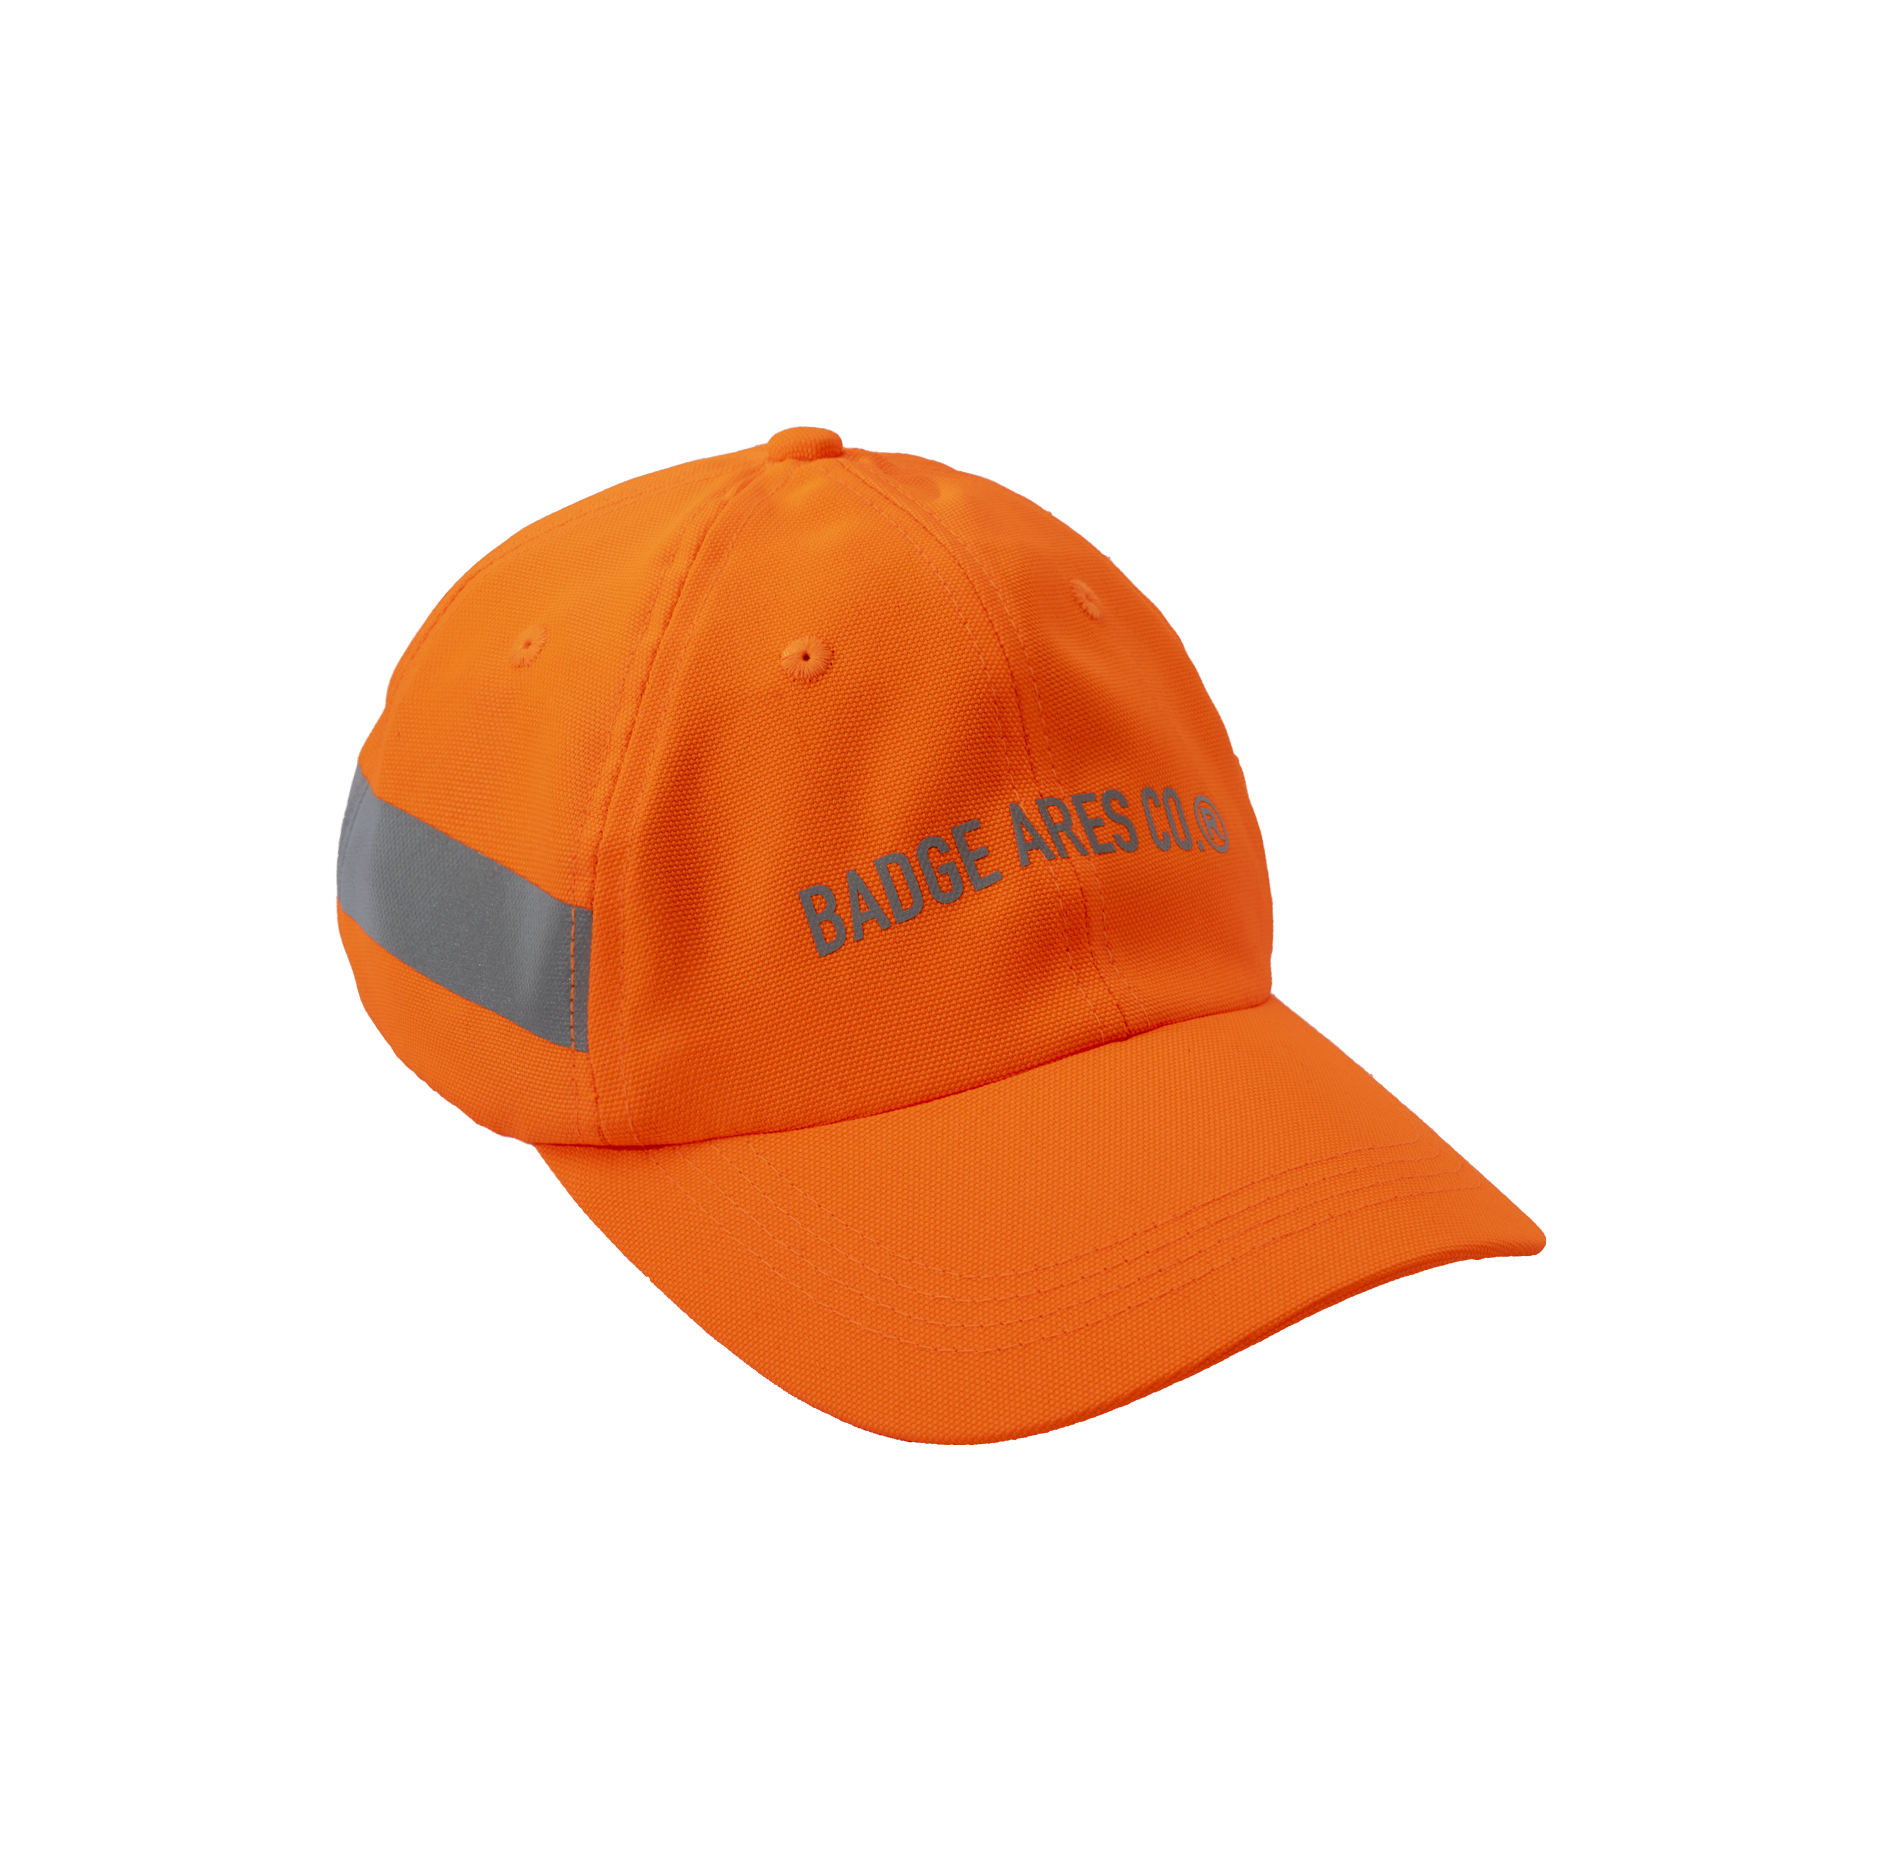 BADGE Reflective cap01.png